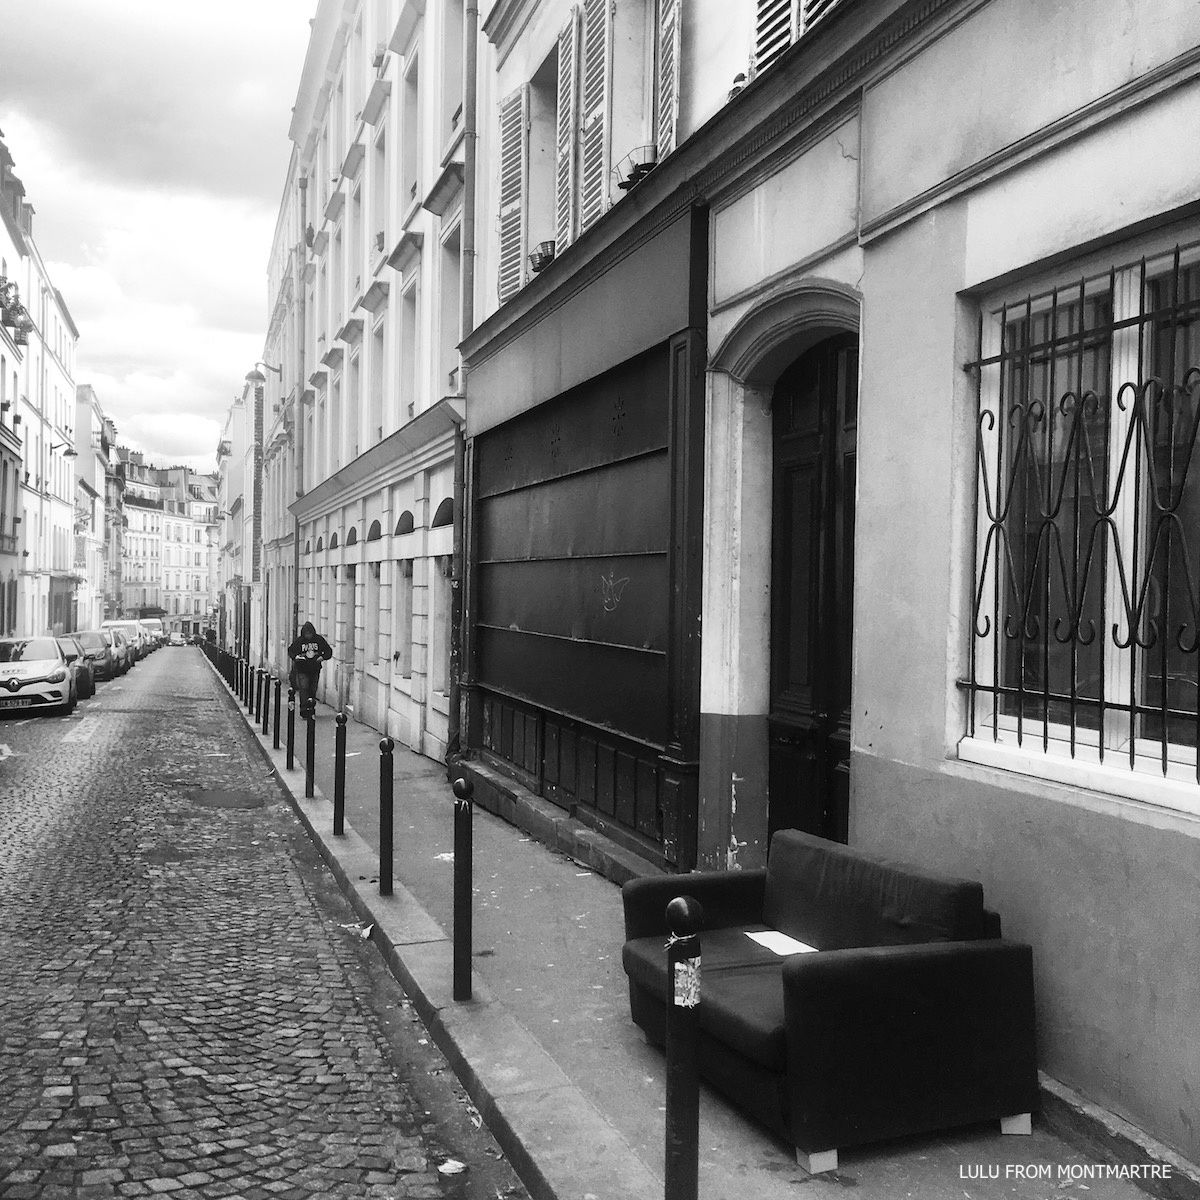 07. Lost in Montmartre, 75018